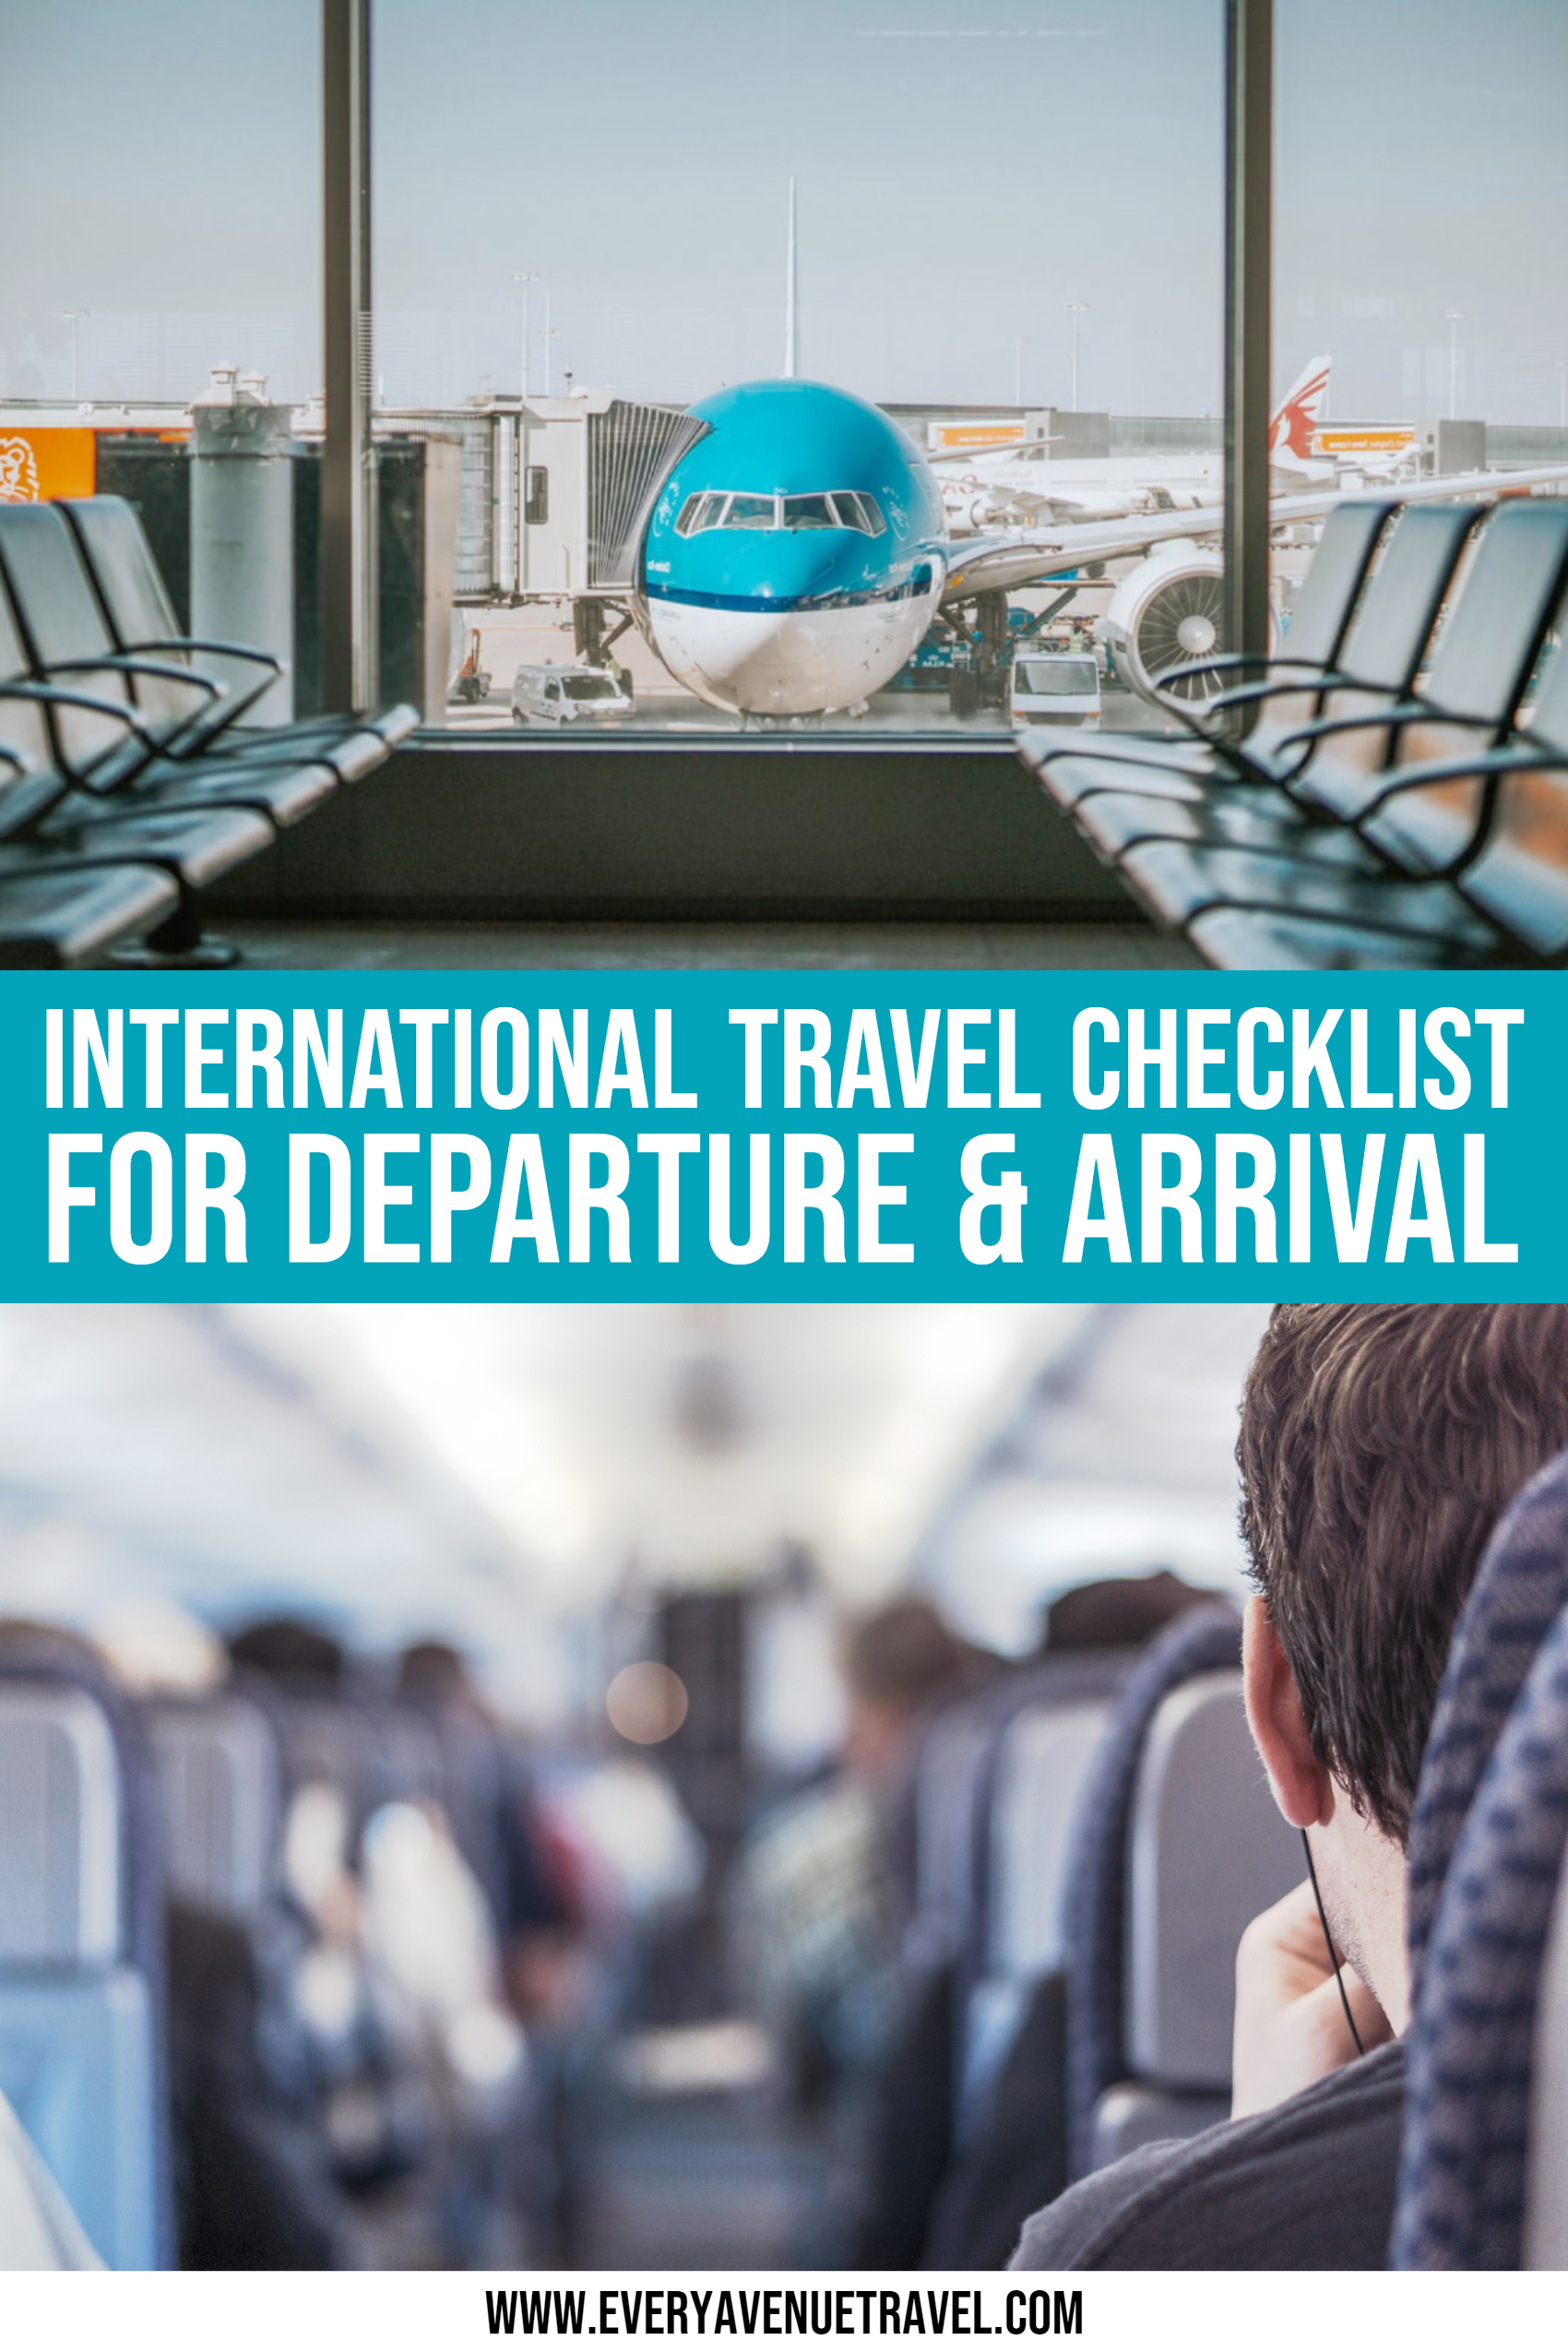 International Travel Checklist For Departure & Arrival